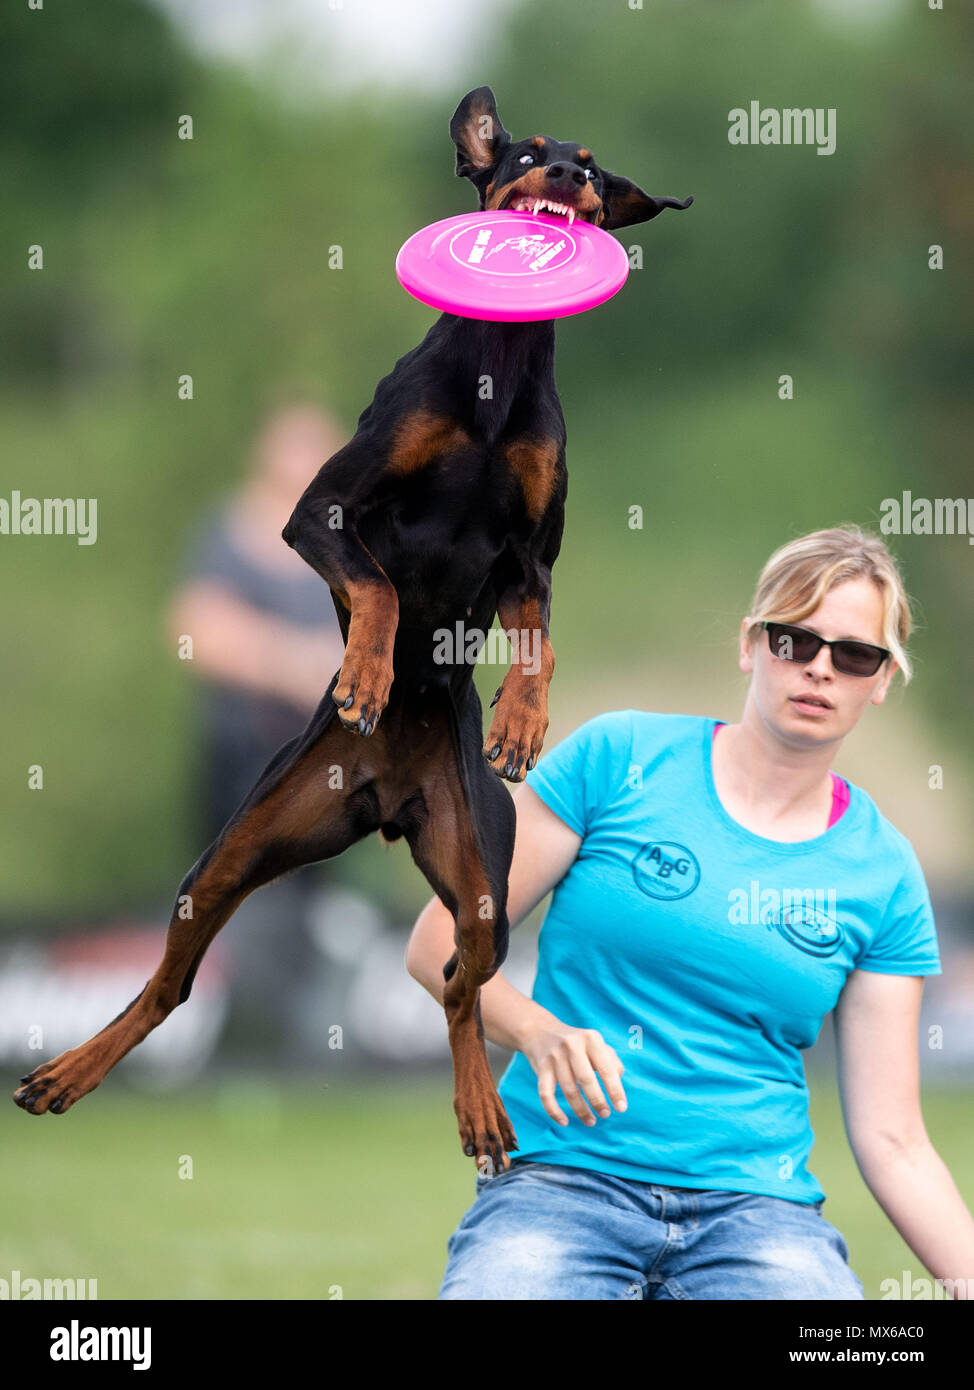 03 May 2018, Germany, Erftstadt: Franziska Wieland and her dog Cagiva taking part in the discipline 'freestyle' at the dog frisbee tournament. The participant throws up to seven frisbees that his dog has to catch. The freestyle event is combined to music. Around 60 particpants from 7 countries take part in the event. Photo: Marius Becker/dpa Stock Photo